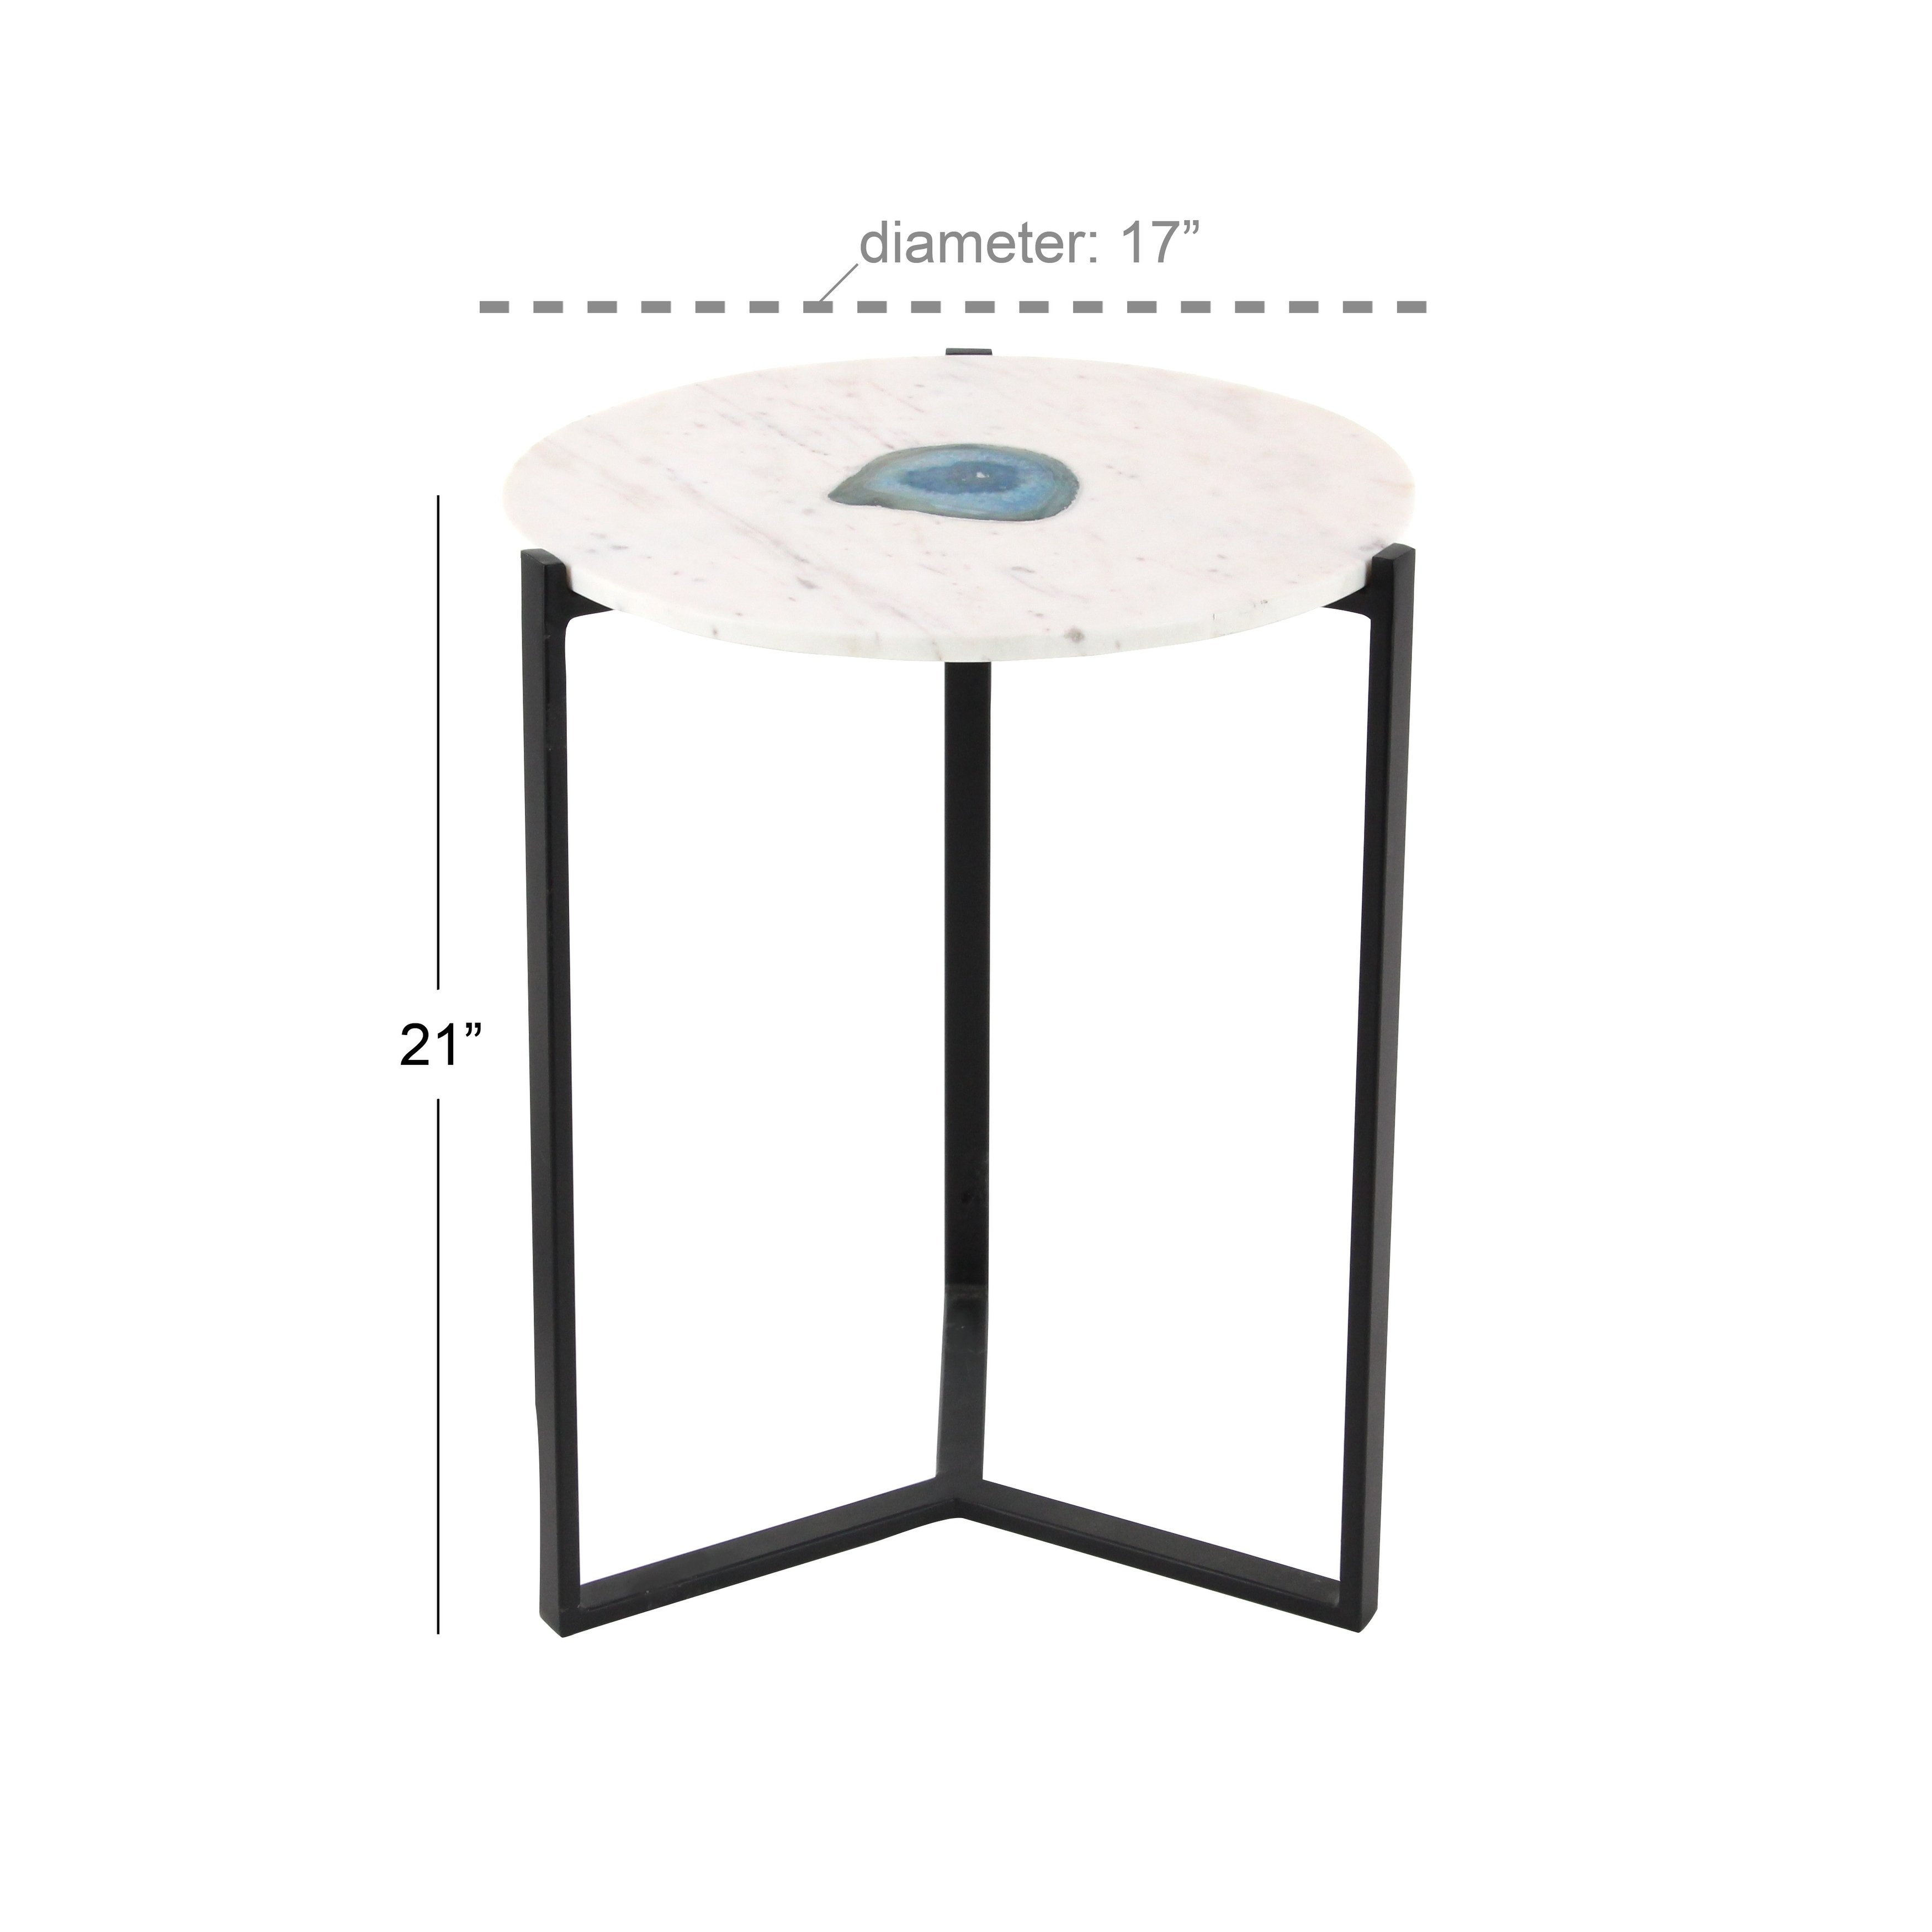 modern inch round black and white marble accent table studio free shipping today top wood coffee trestle dining ethan allen room sets skinny foyer runner quilt kits small mirrored